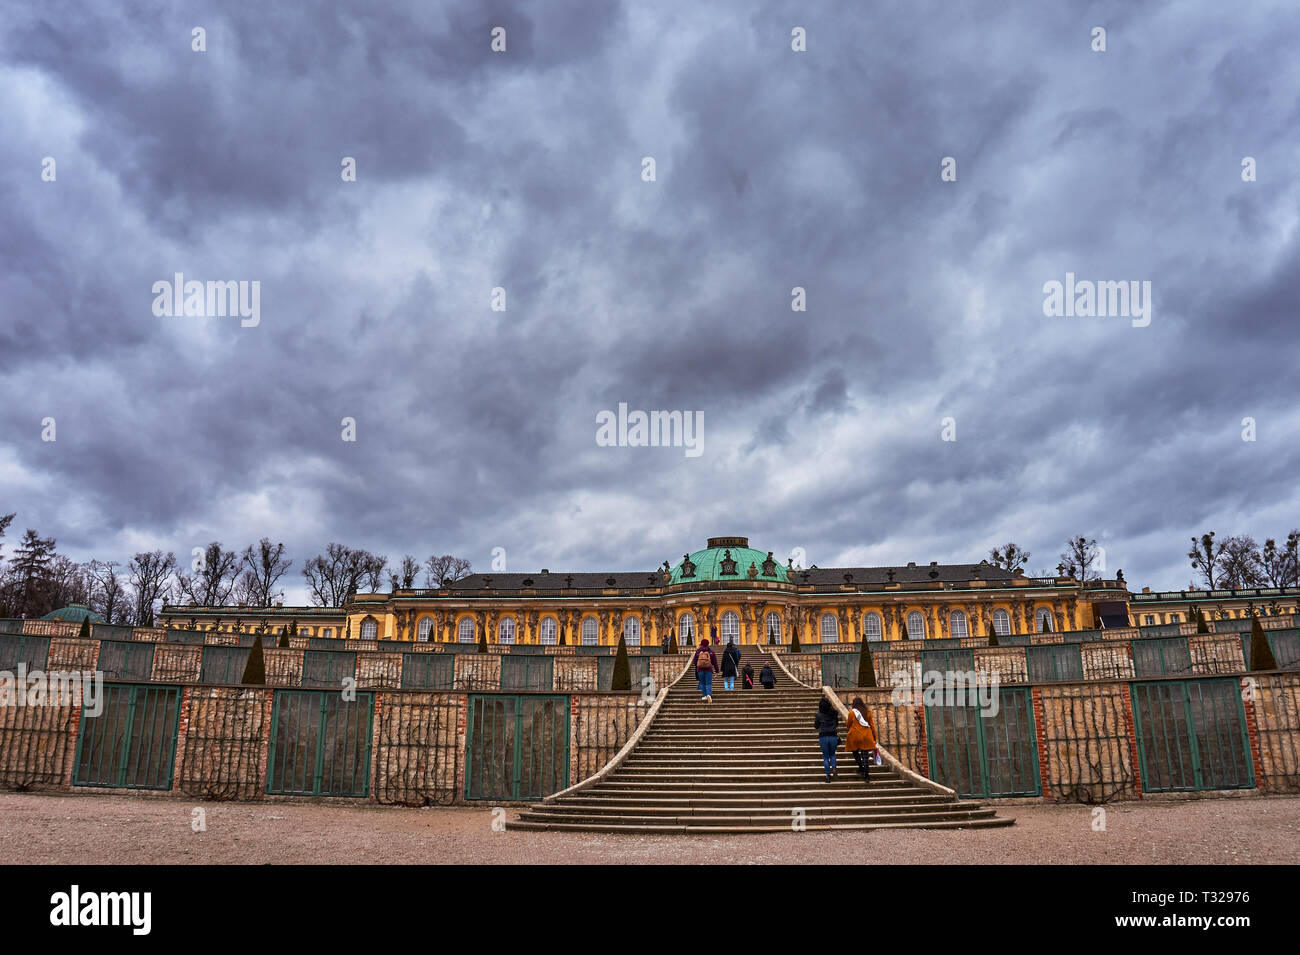 Beautiful scenery from the park of the Grand Sanssouci summer palace against a cloudy sky in Potsdam, state Brandenburg. Germany - Stock Image